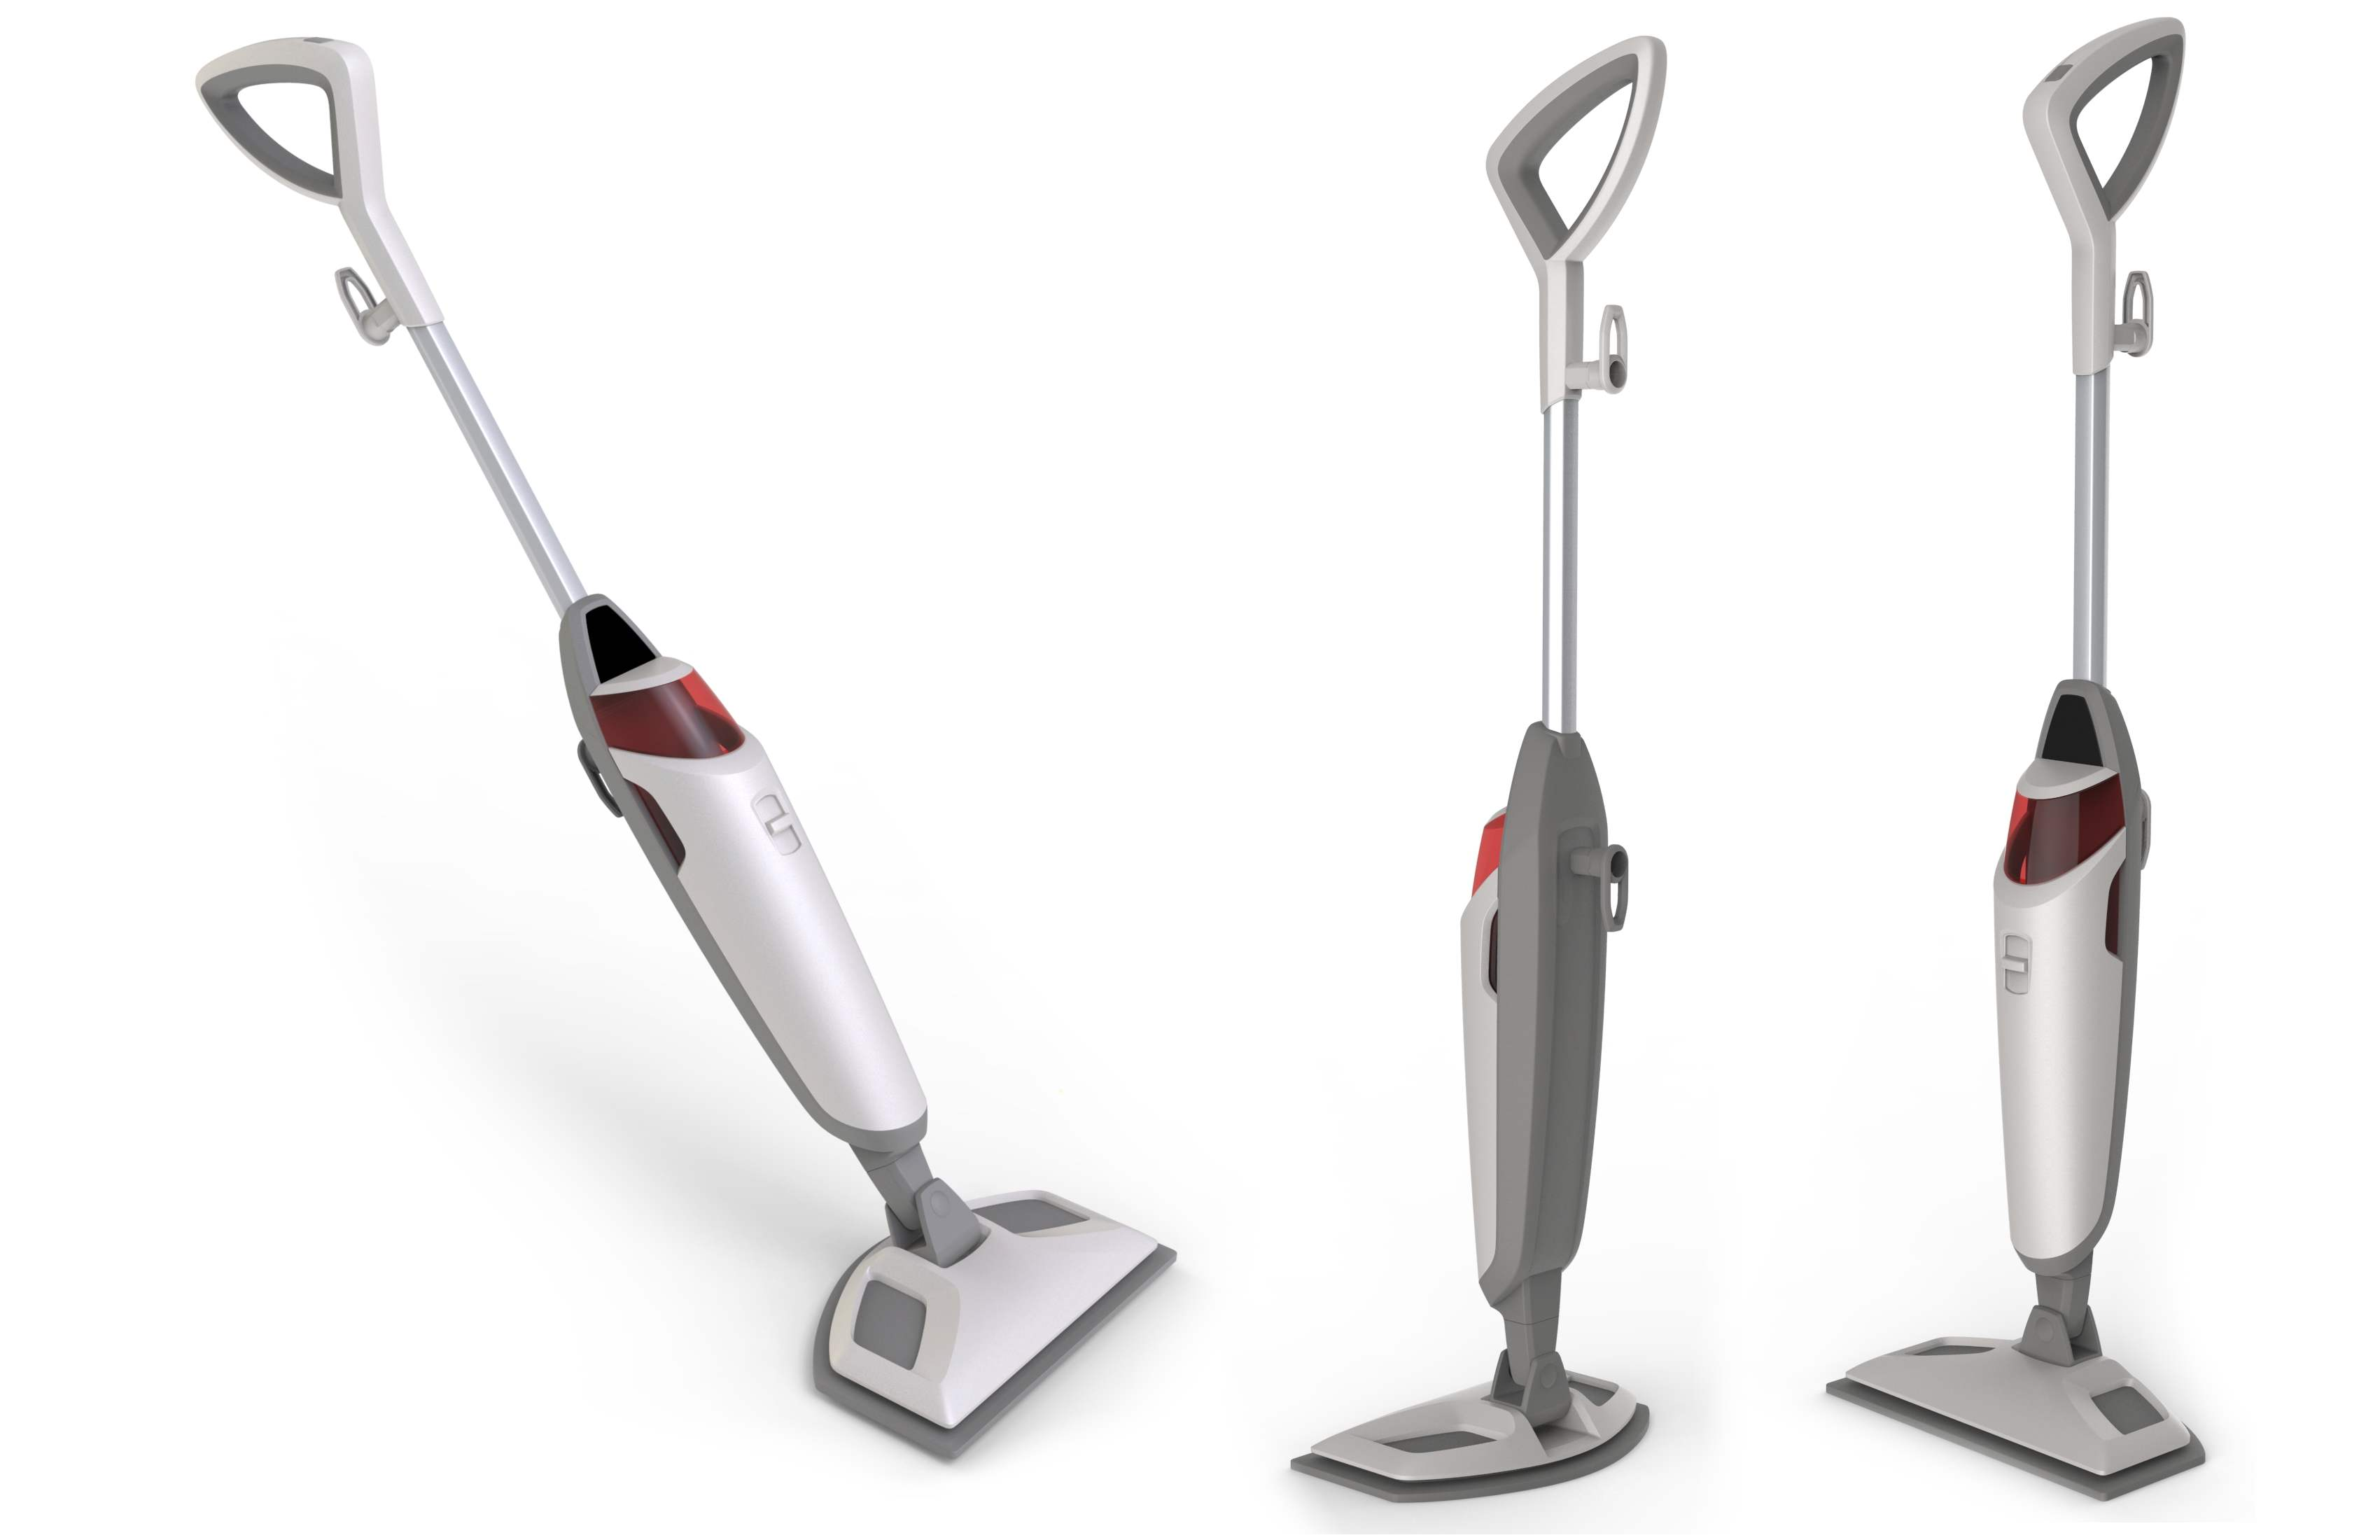 Bissell powerfresh steam mop by thomas mitchell at for Bissell powerfresh steam mop